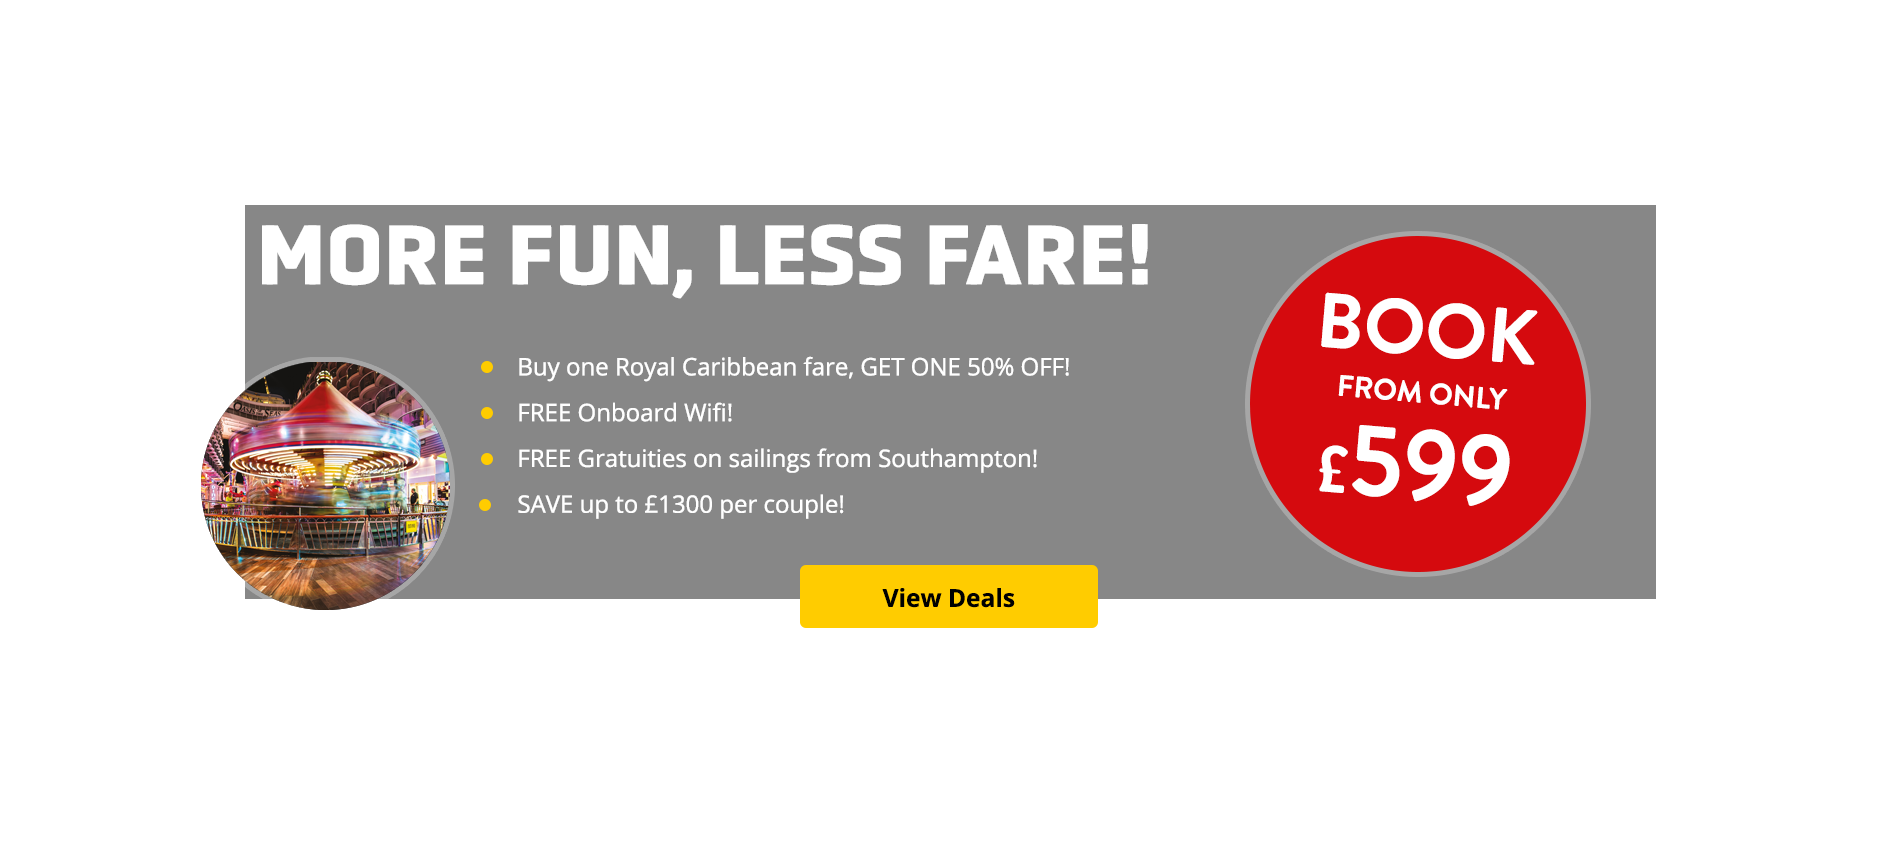 Royal Caribbean; More fun Less fare! Buy one get one half price! Your hotel stay and flights are included, so why not book now from just £9 per person?